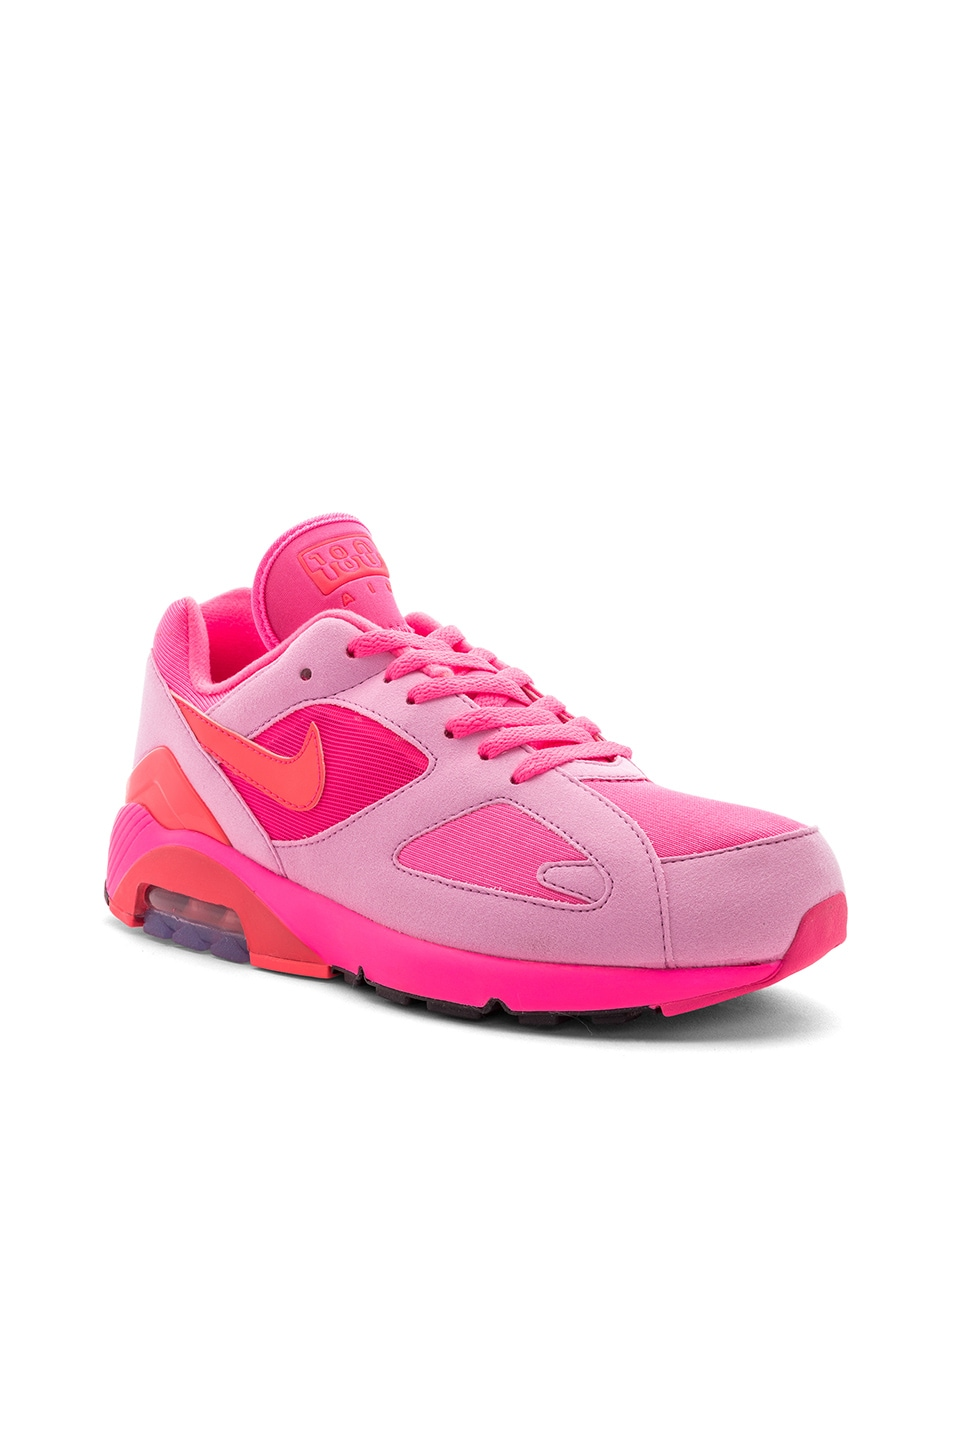 separation shoes 65836 28e92 Image 1 of Comme Des Garcons Homme Plus x Nike Air Max 180 in Pink